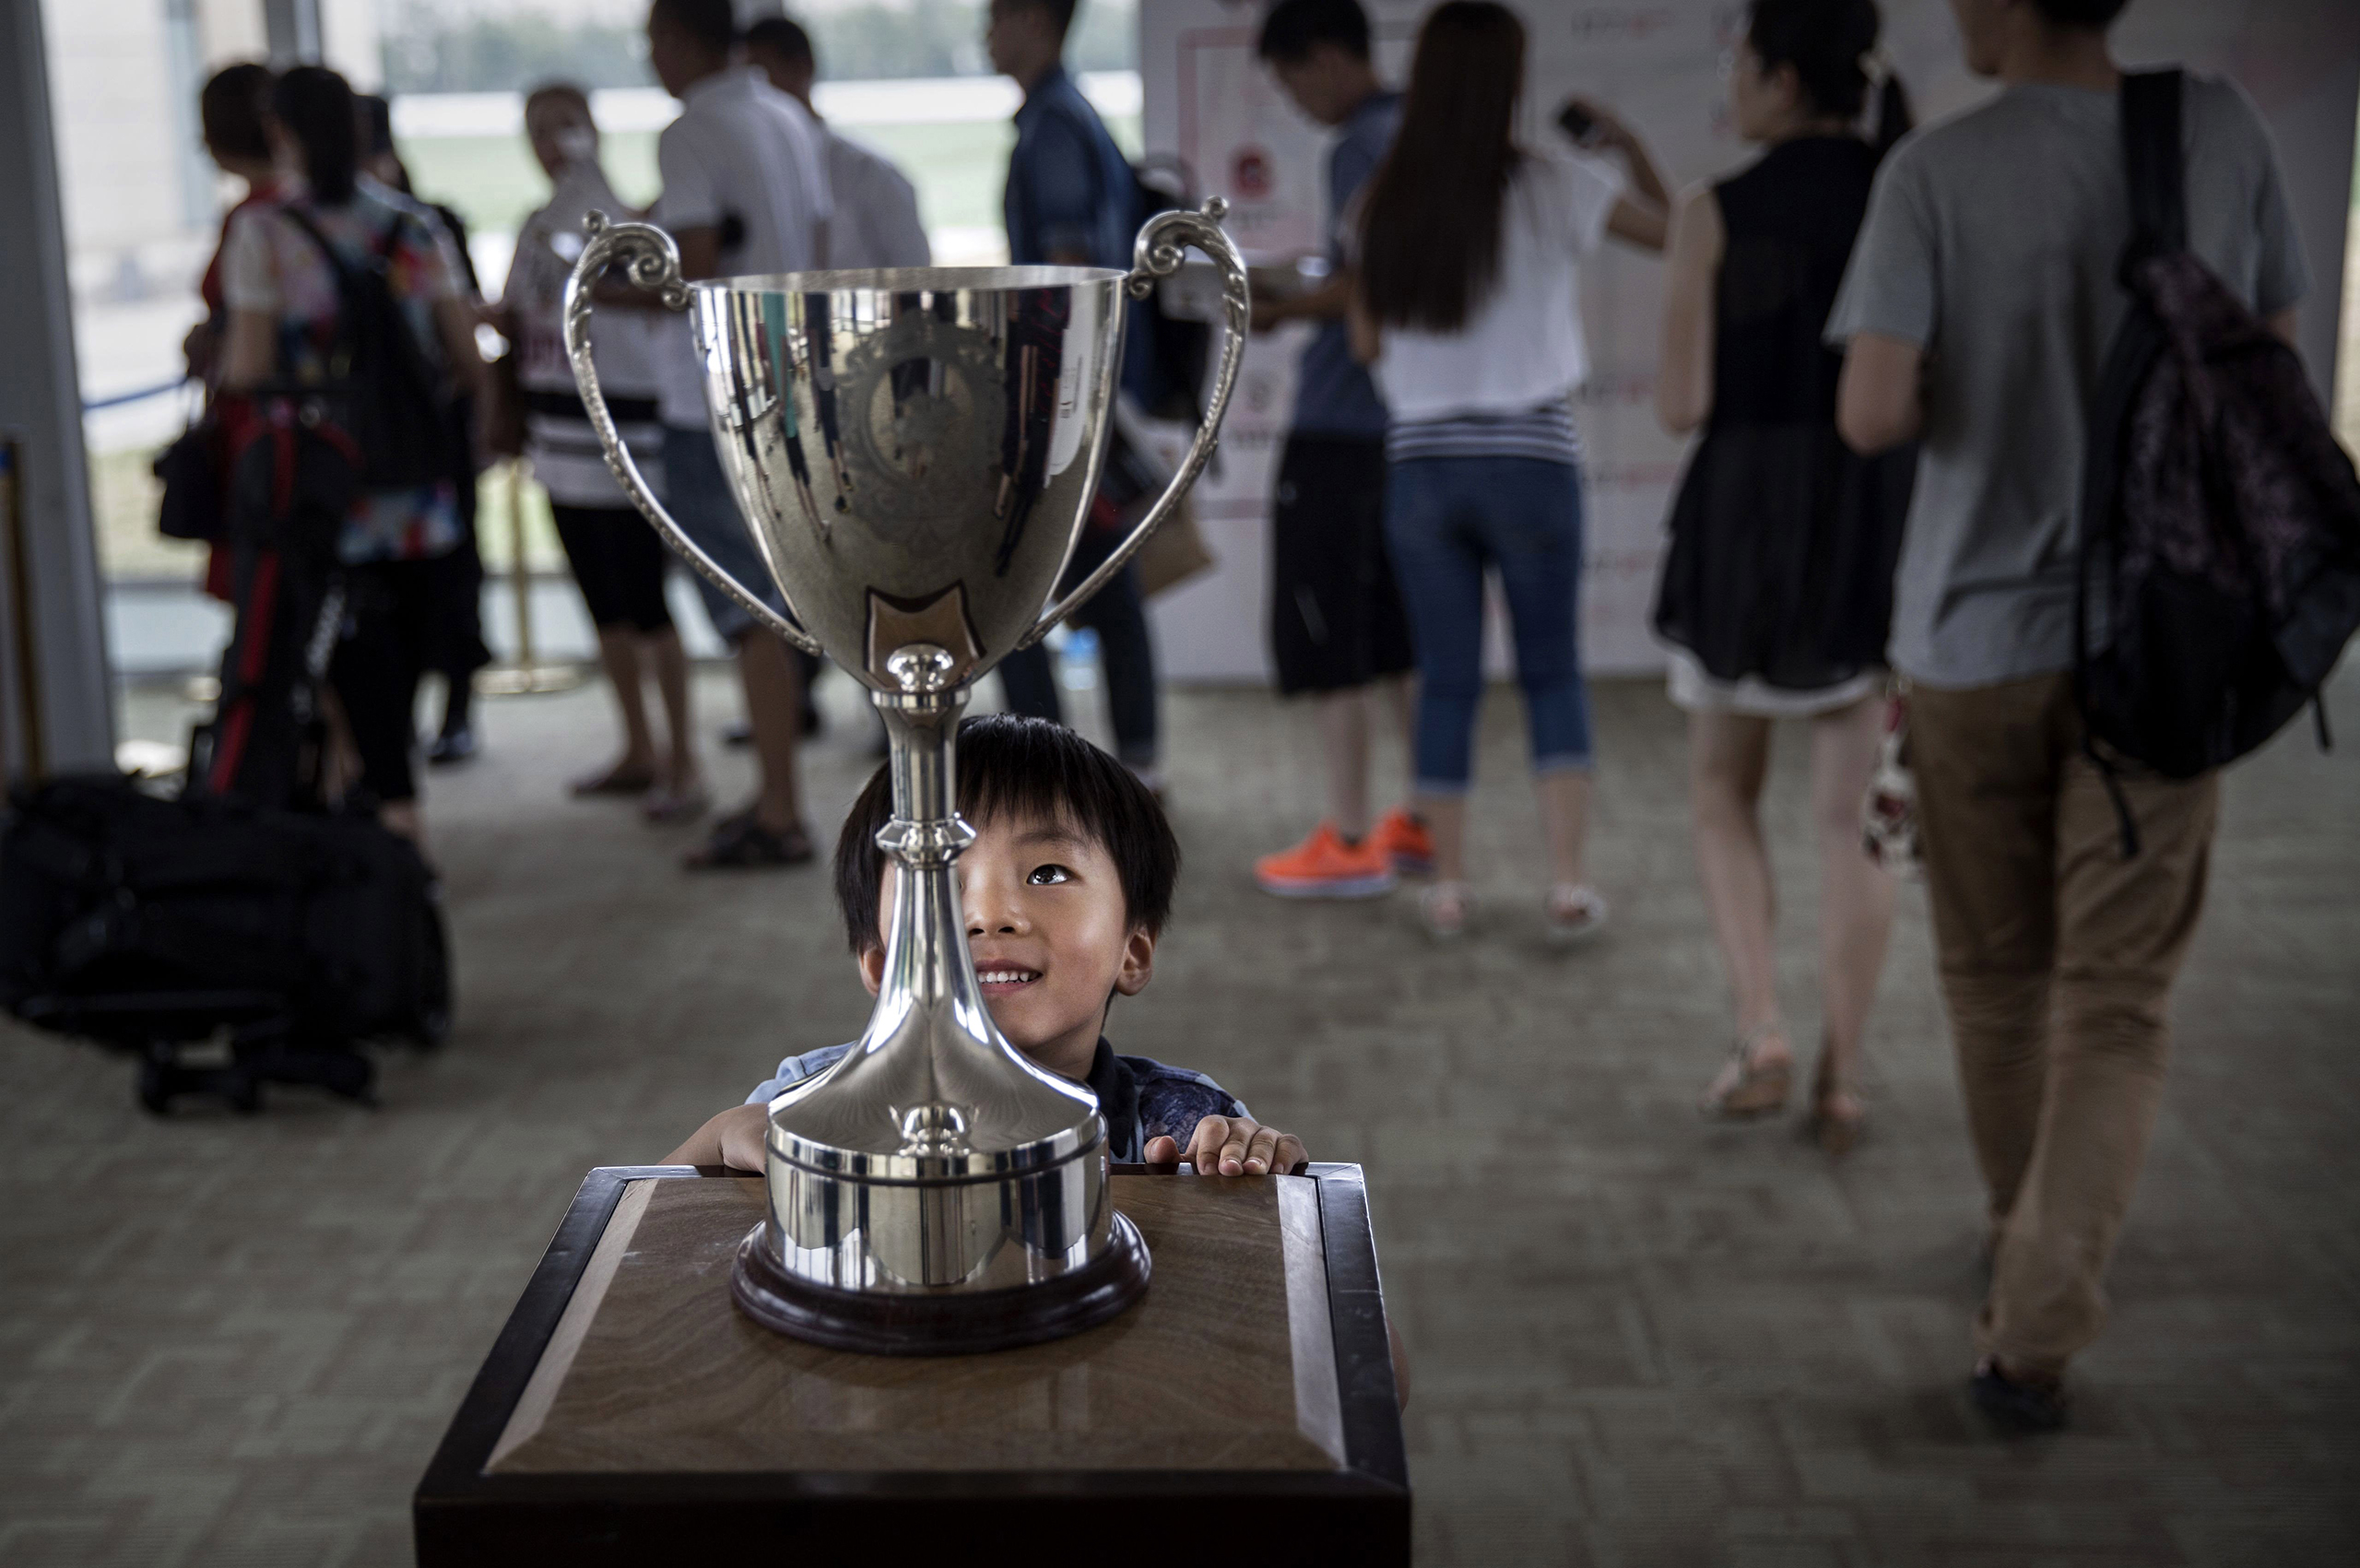 A boy looks at the cup before a match at the Tianjin Goldin Metropolitan Polo Club in Tianjin, China, on July 17, 2016.